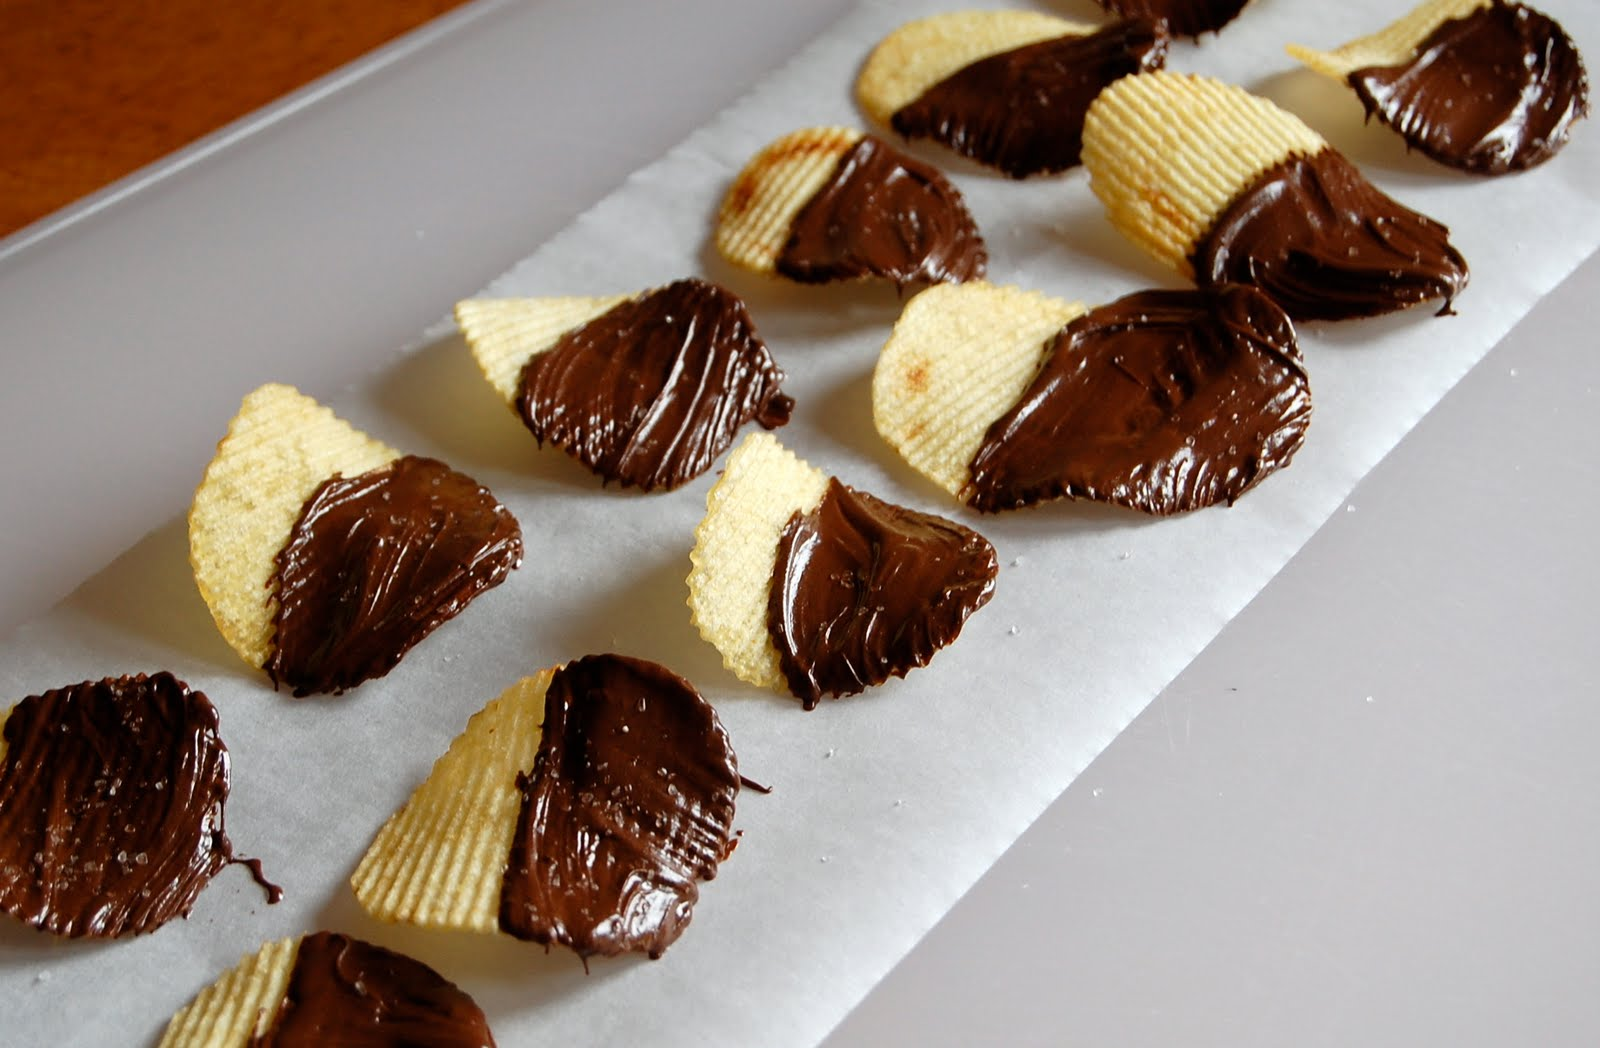 How to Make Chocolate Covered Potato Chips